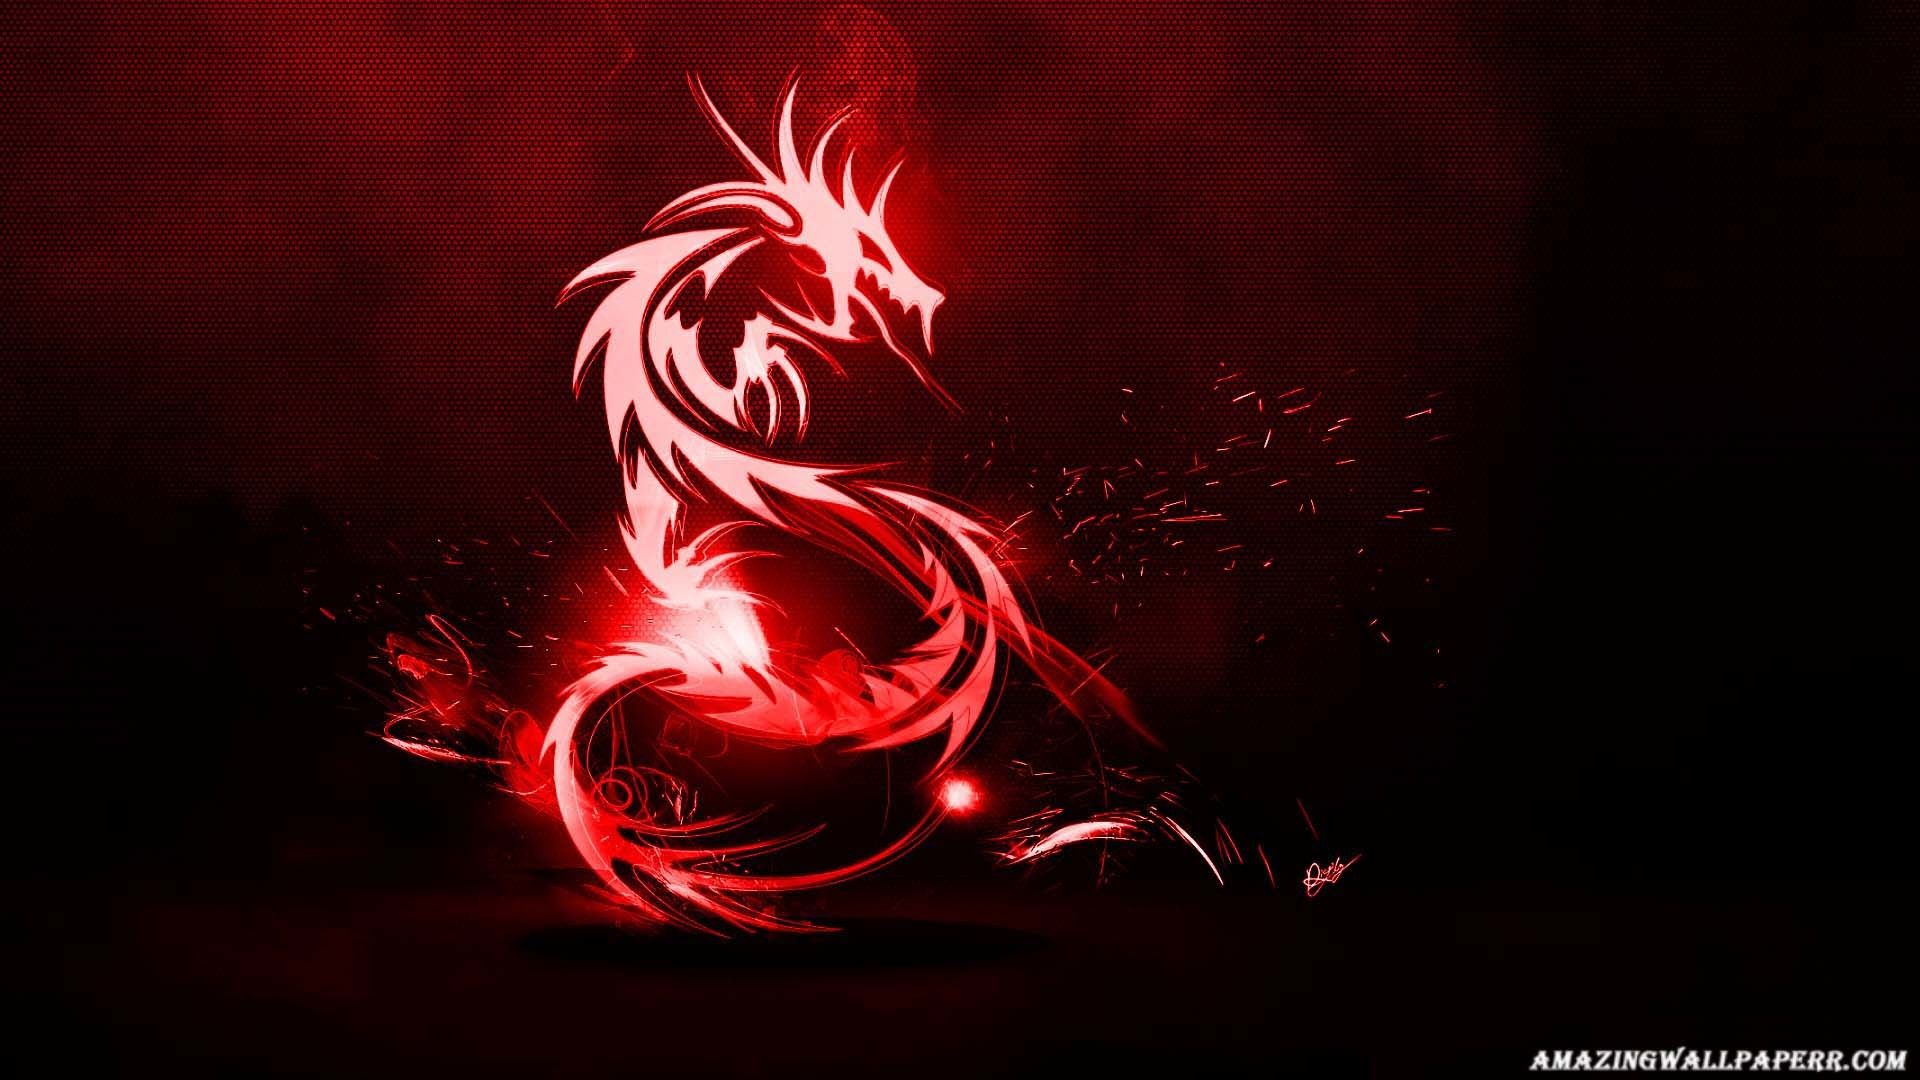 1920x1080 Dragon Wallpaper Hd By Sheikhsherry44 Dragon